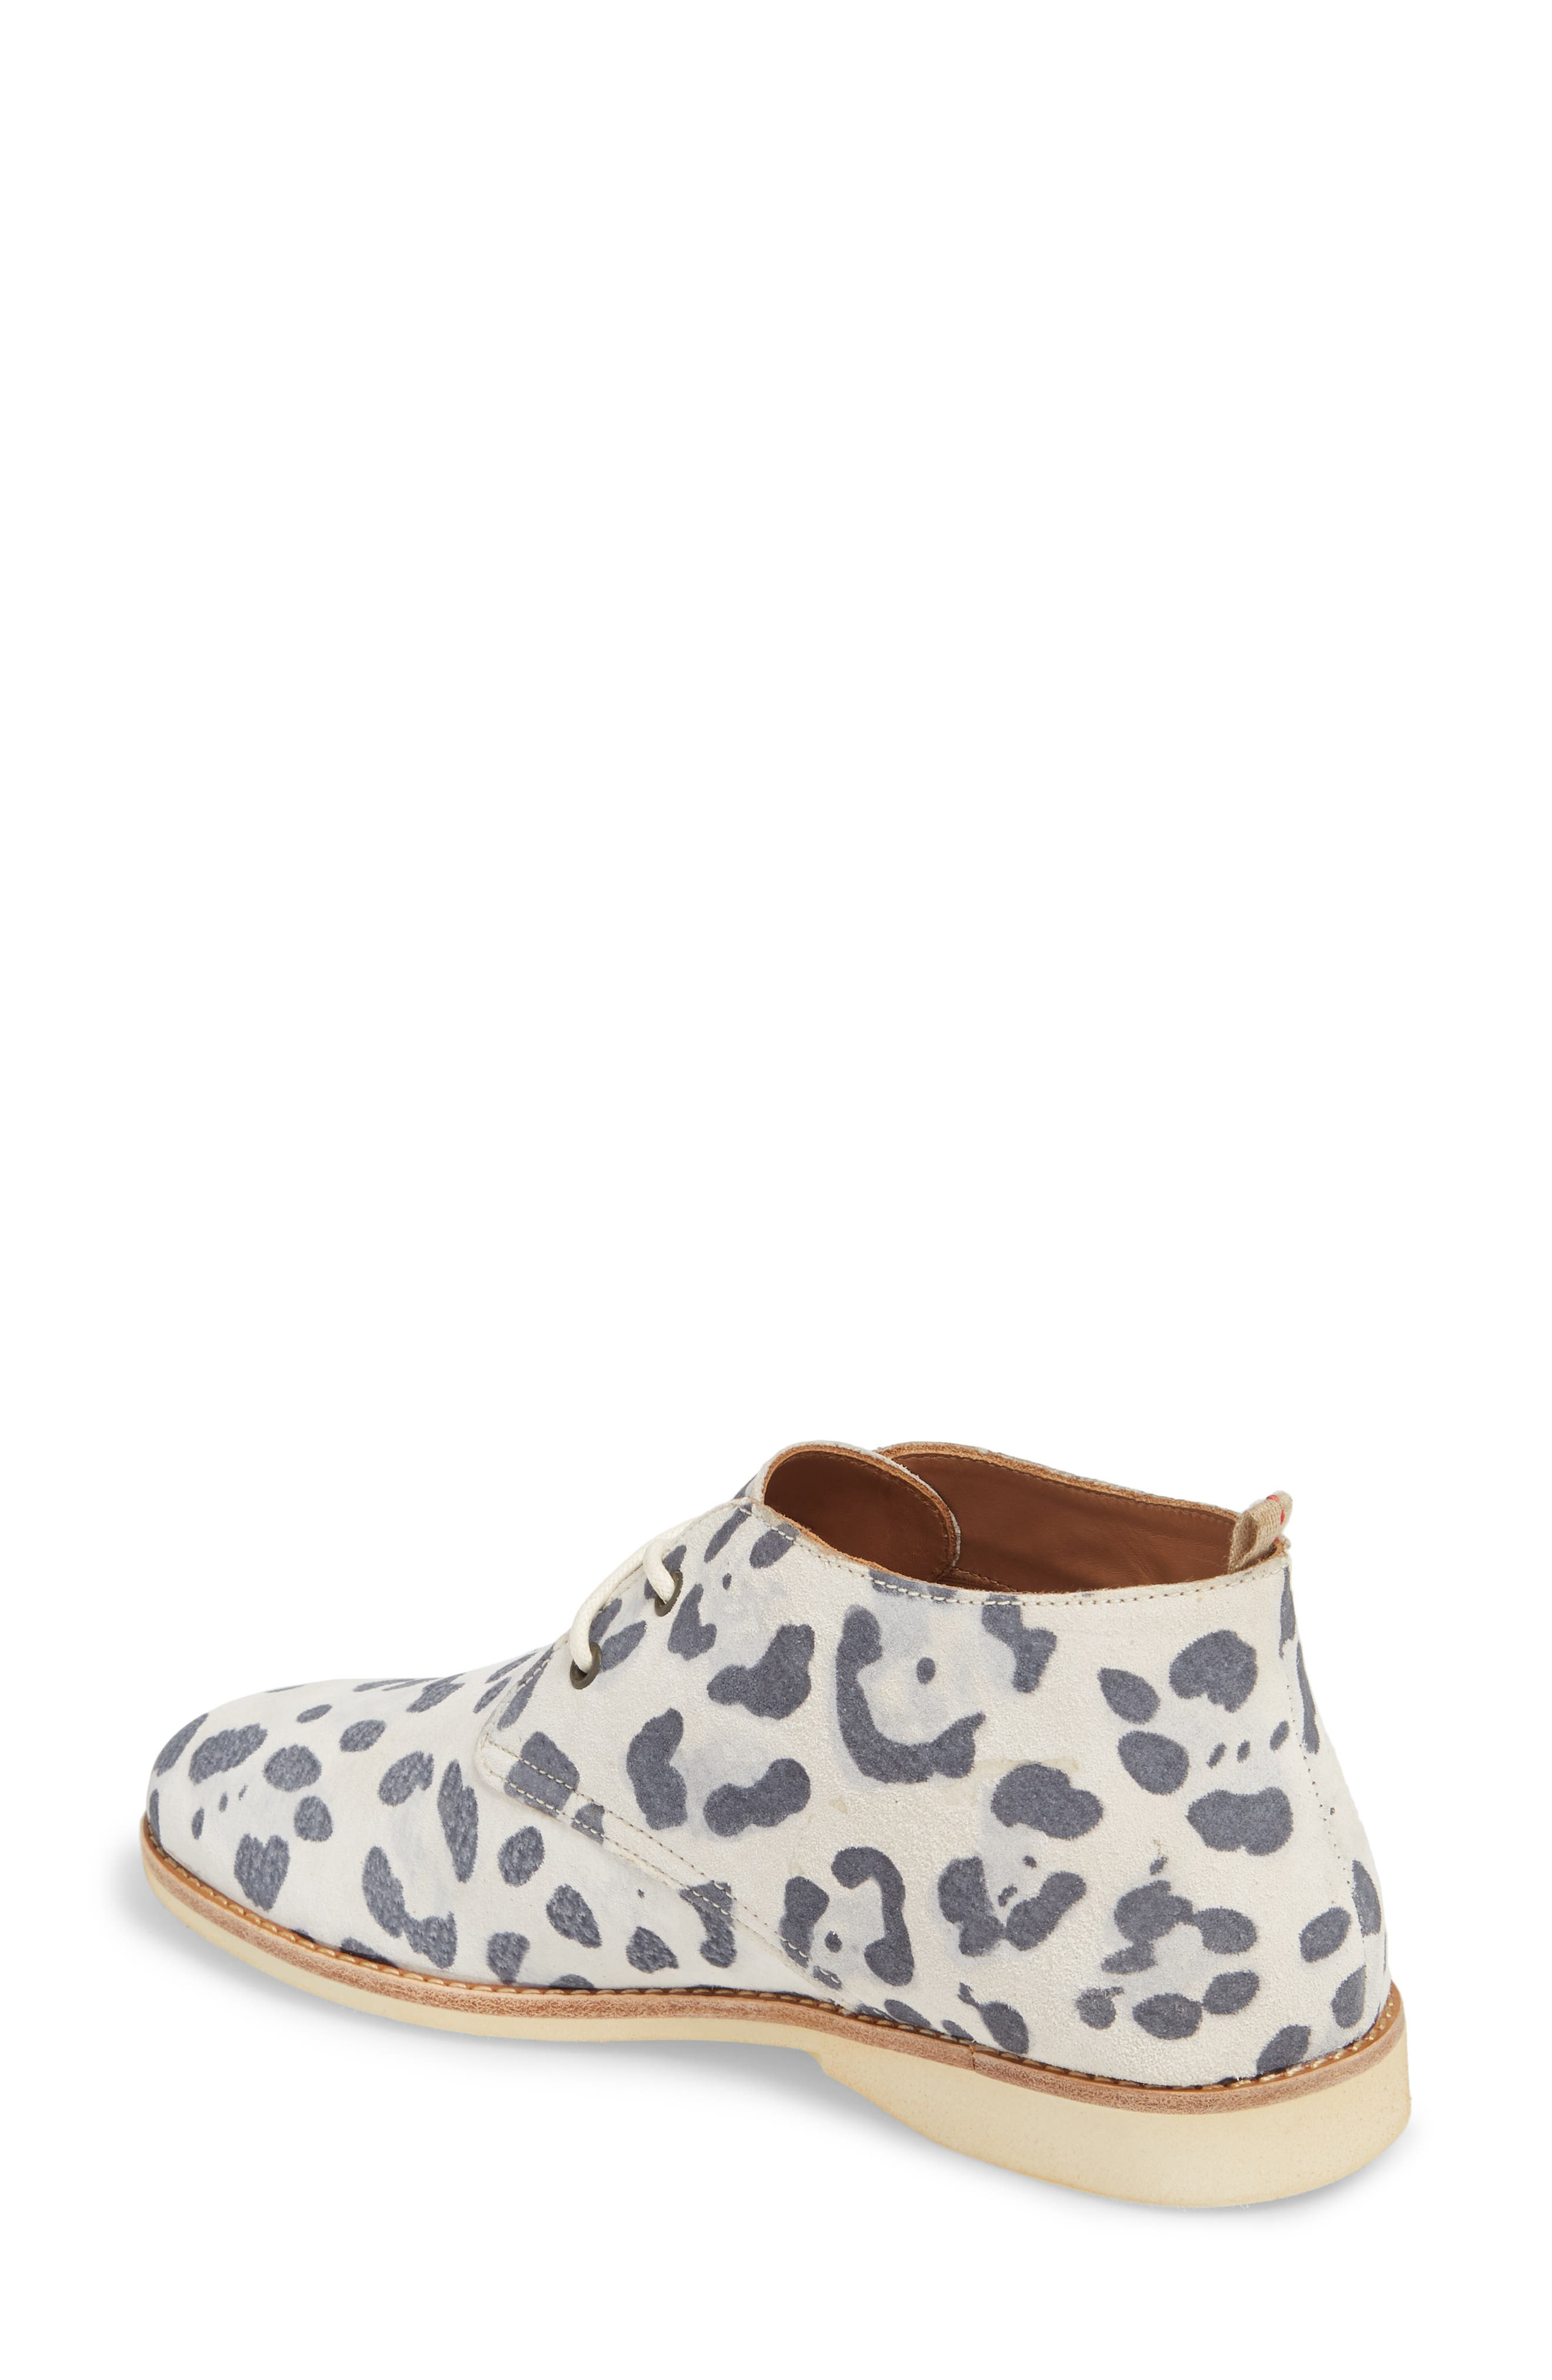 Chukka Bootie,                             Alternate thumbnail 2, color,                             Grey Leopard Suede